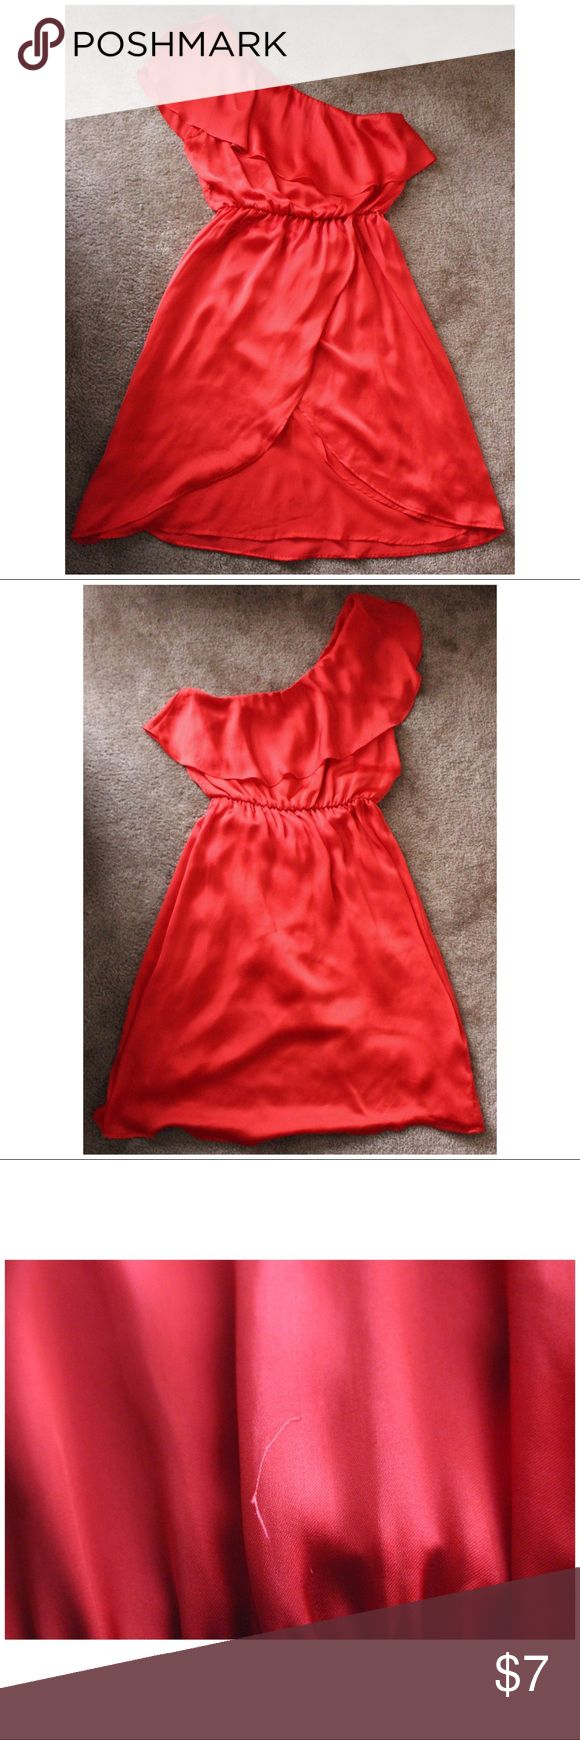 PRICE FIRM Forever 21 One Shoulder Red Dress Thread sticking out on the back of the dress. Purchased of eBay. Never worn by me. Ships fast! Forever 21 Dresses